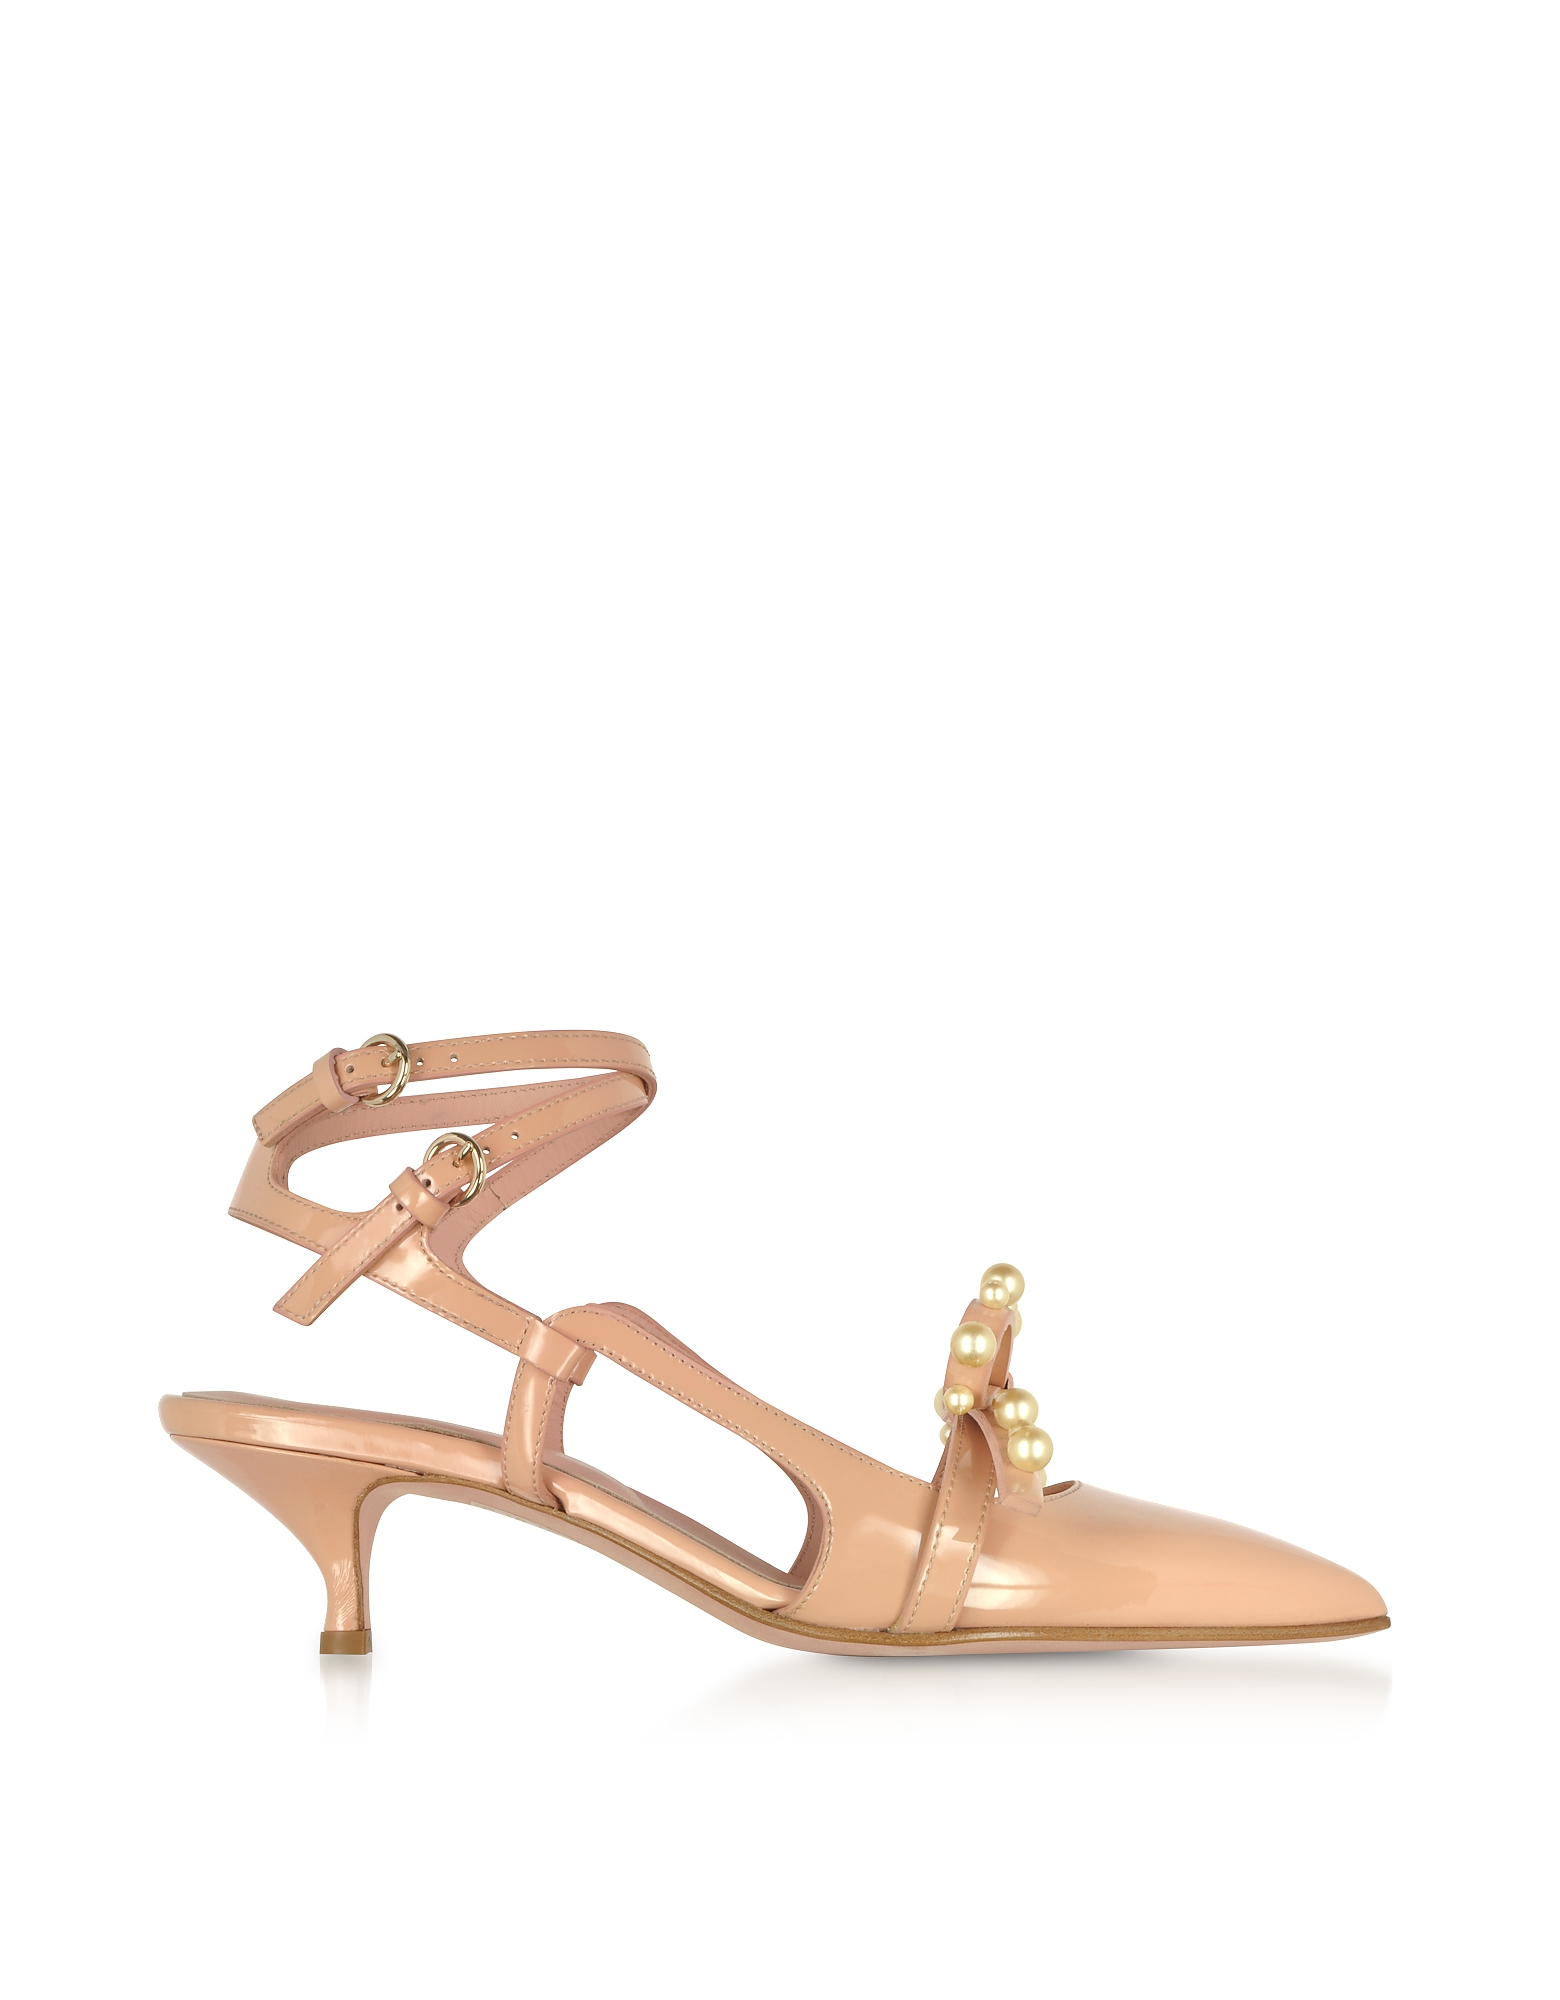 RED Valentino Shoes, Geometric Bow Nude Patent Leather Slingback Shoes